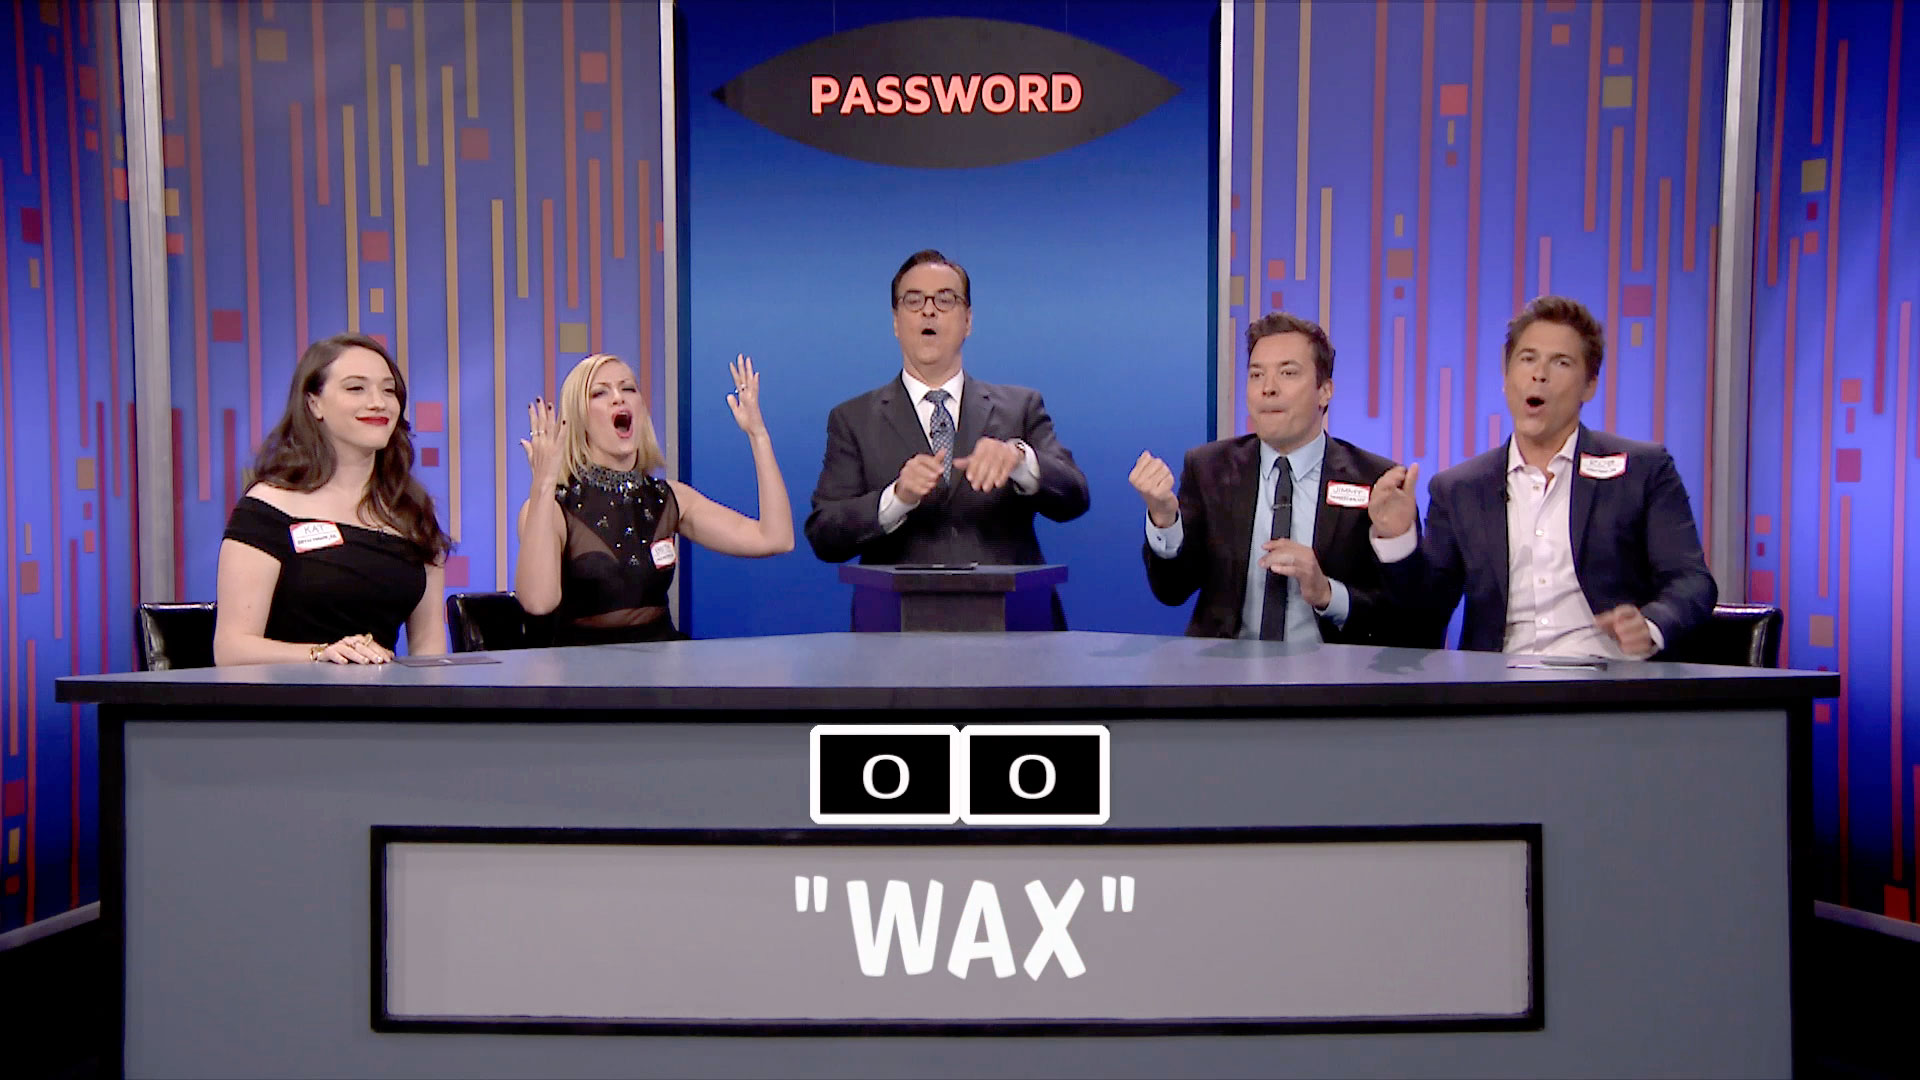 Busy watching Jimmy Fallon play 'Password' with 2 Broke Girls and Rob Lowe